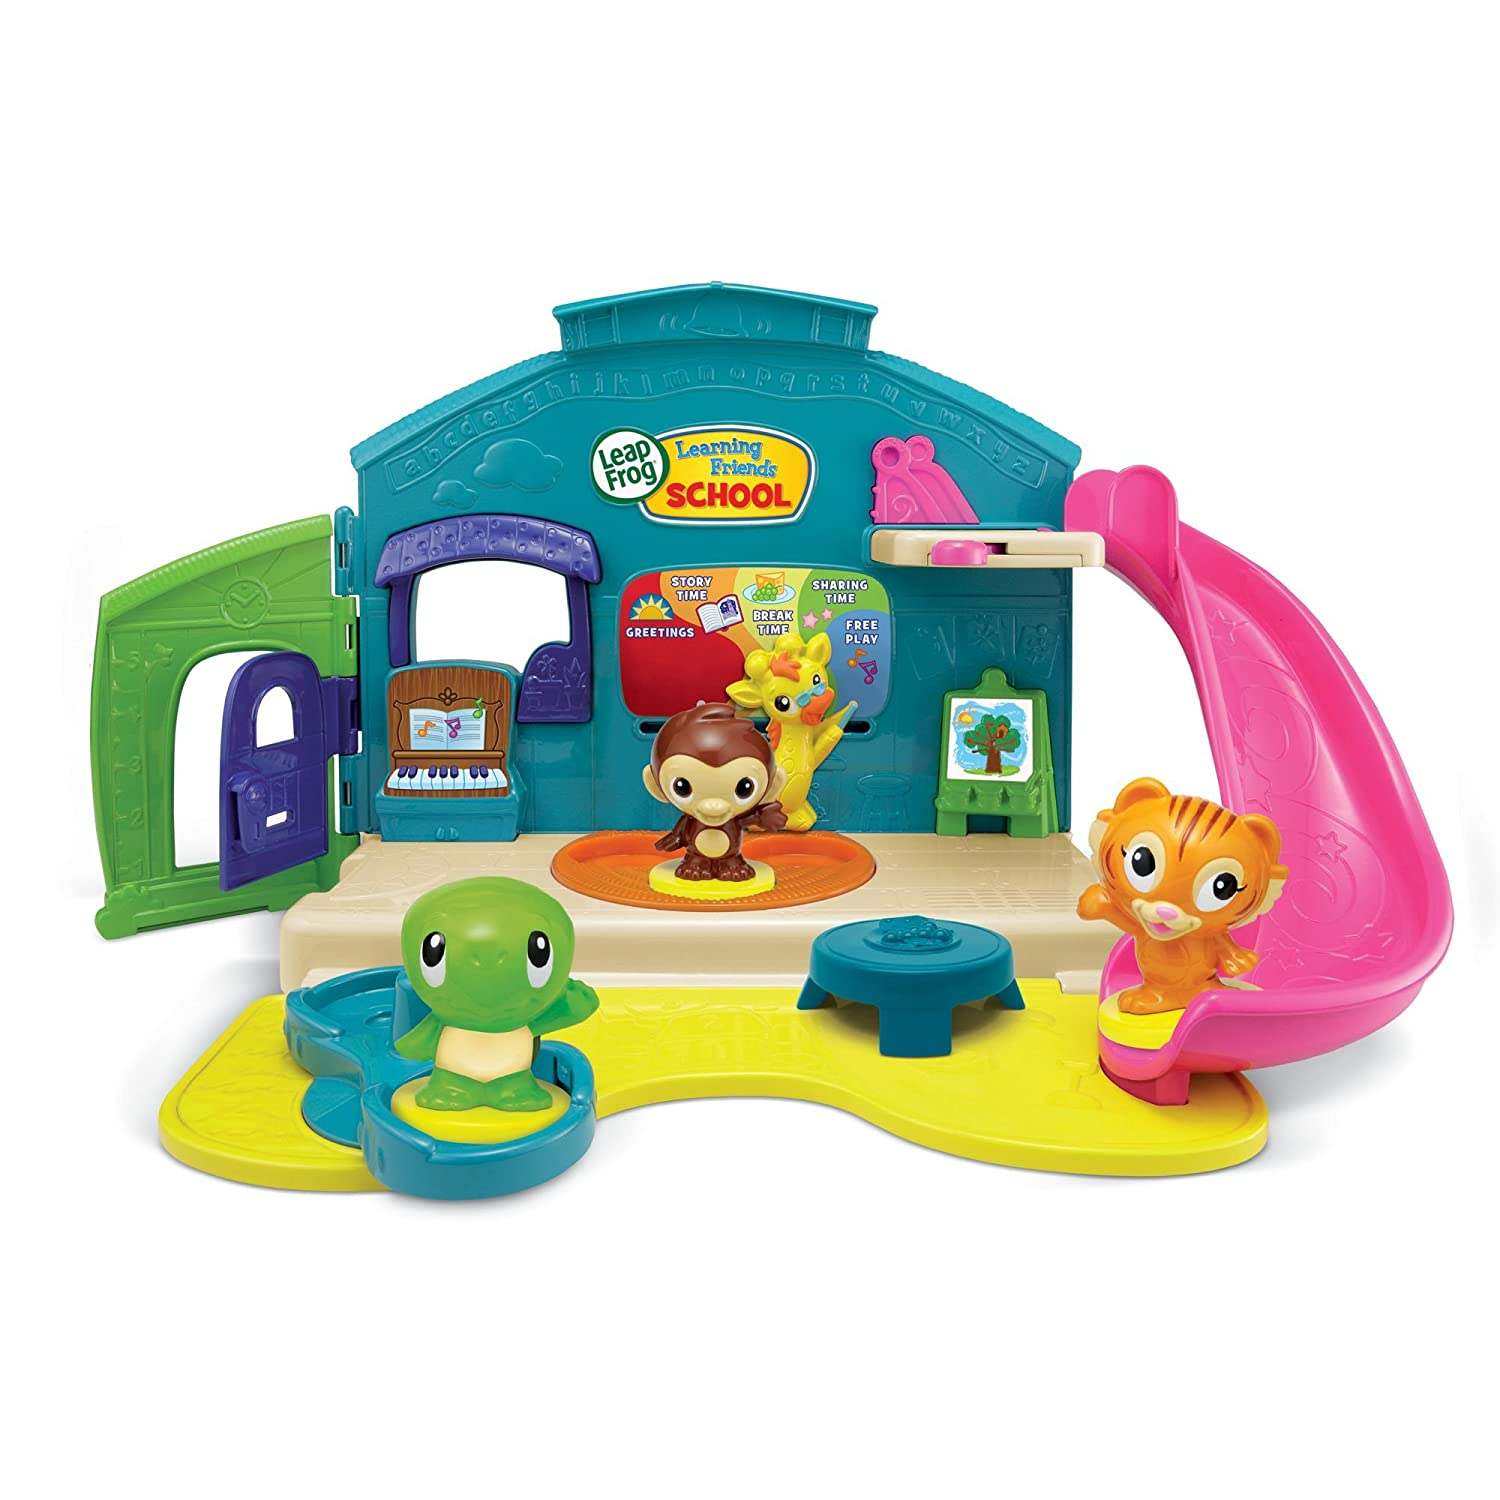 LeapFrog Learning Friends Play And Discover School Set Amazoncouk Toys Games